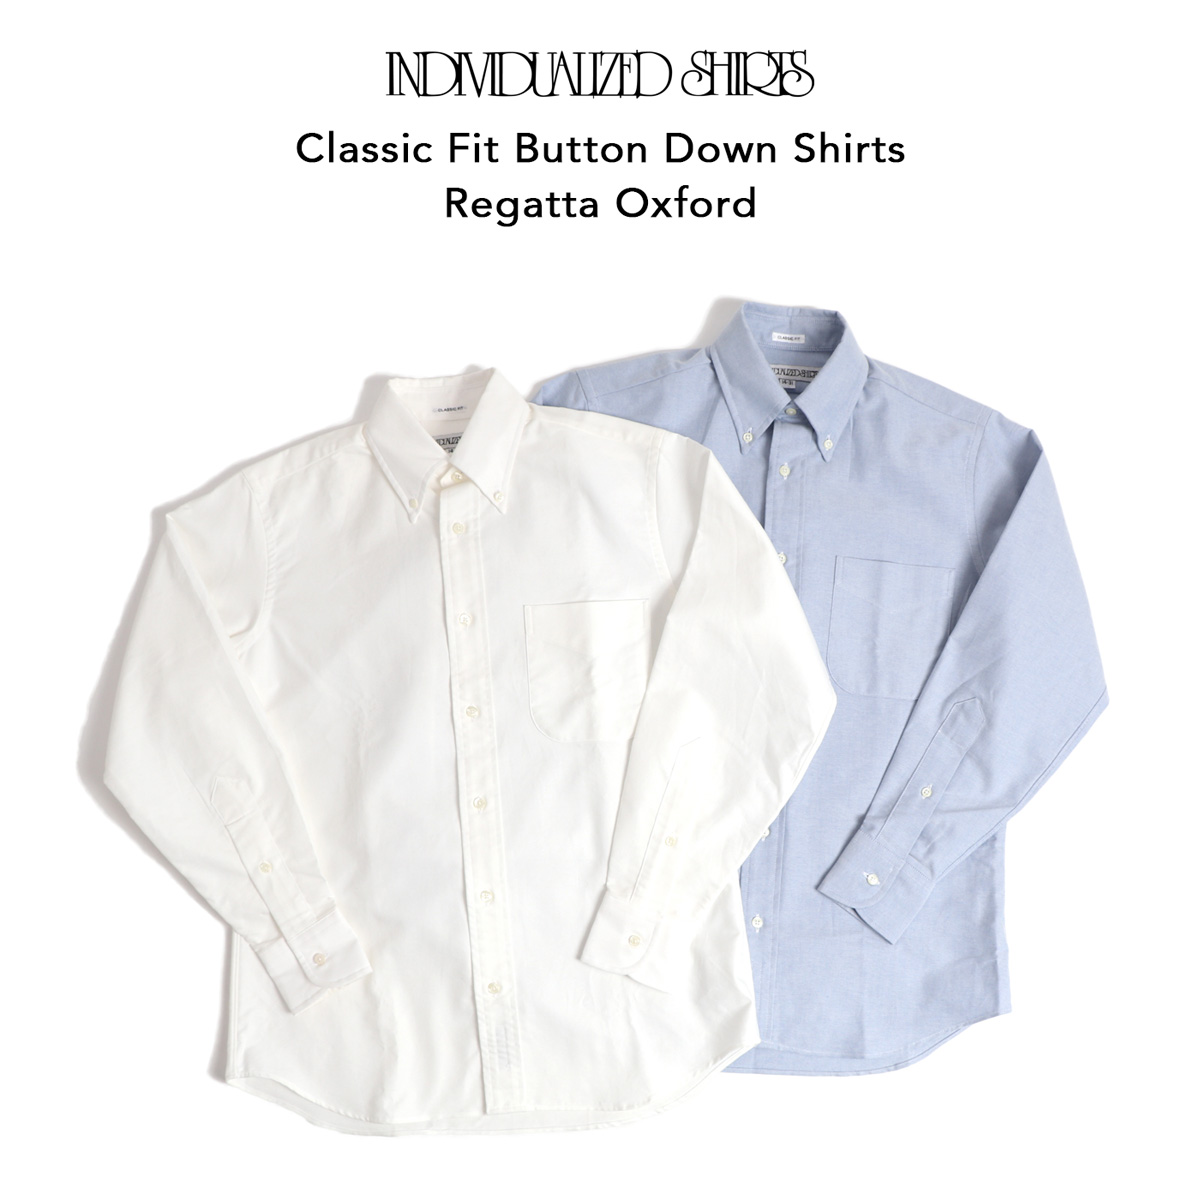 INDIVIDUALIZED SHIRTS ボタンダウンシャツ Classic Fit Regatta Oxford